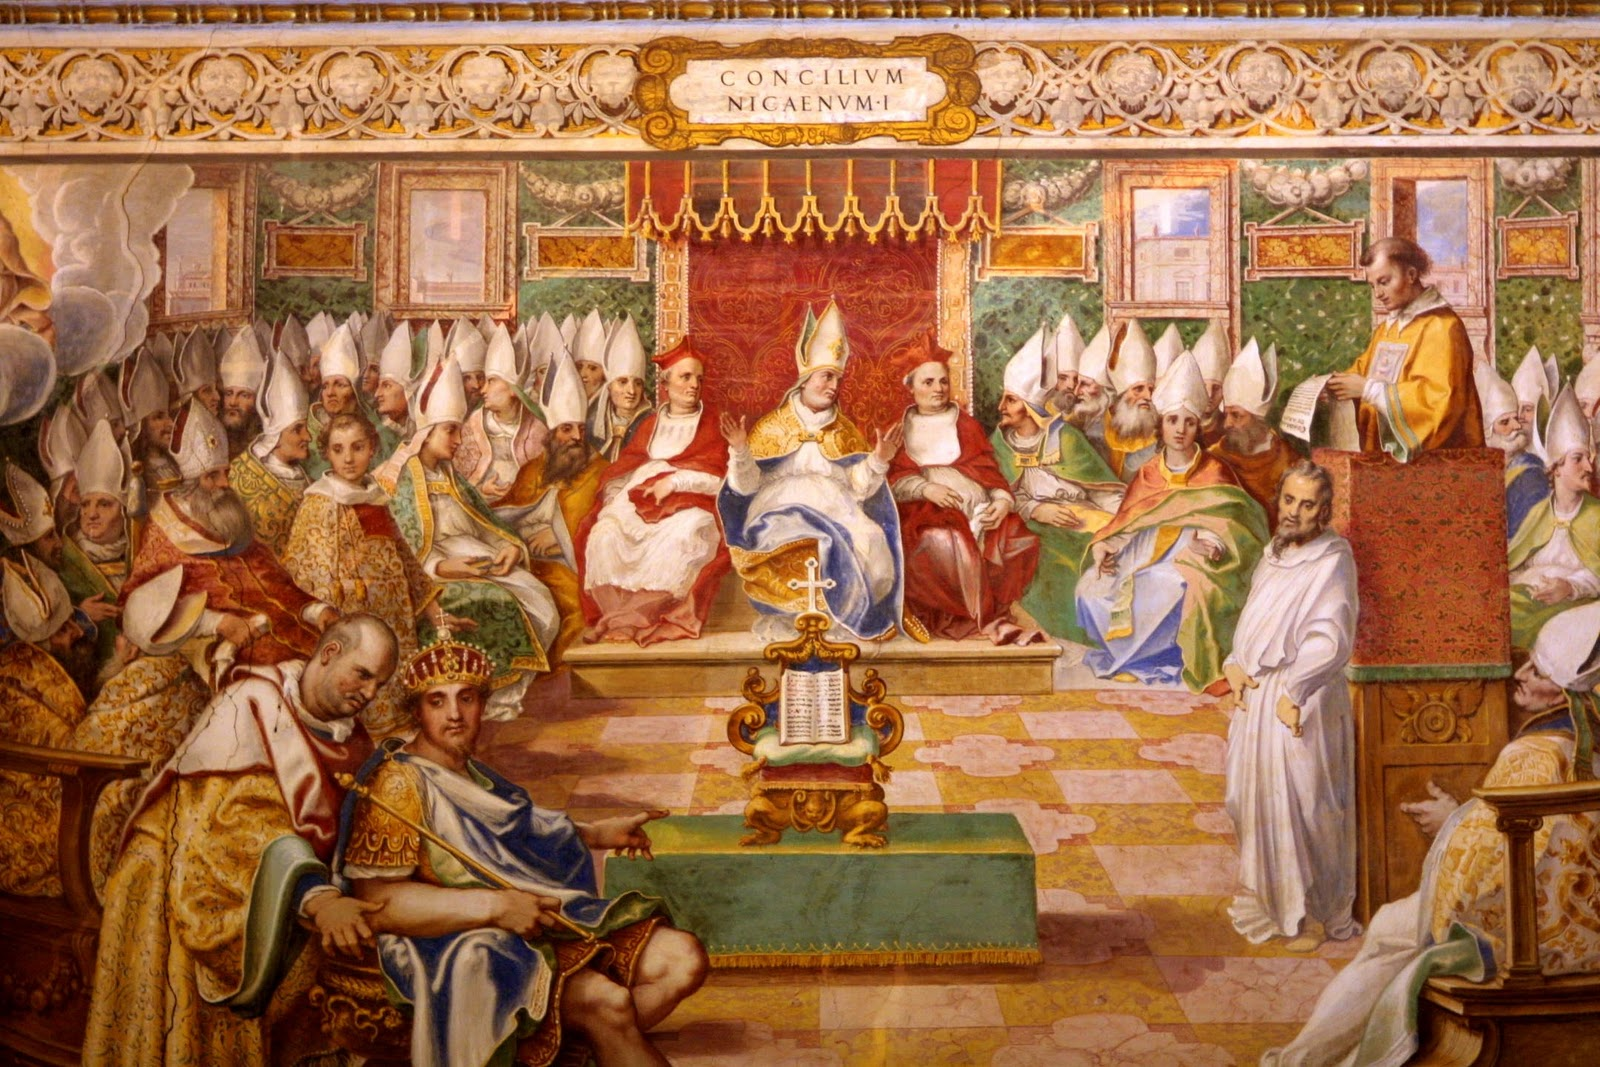 A 16th c. fresco of the Council of Nicaea